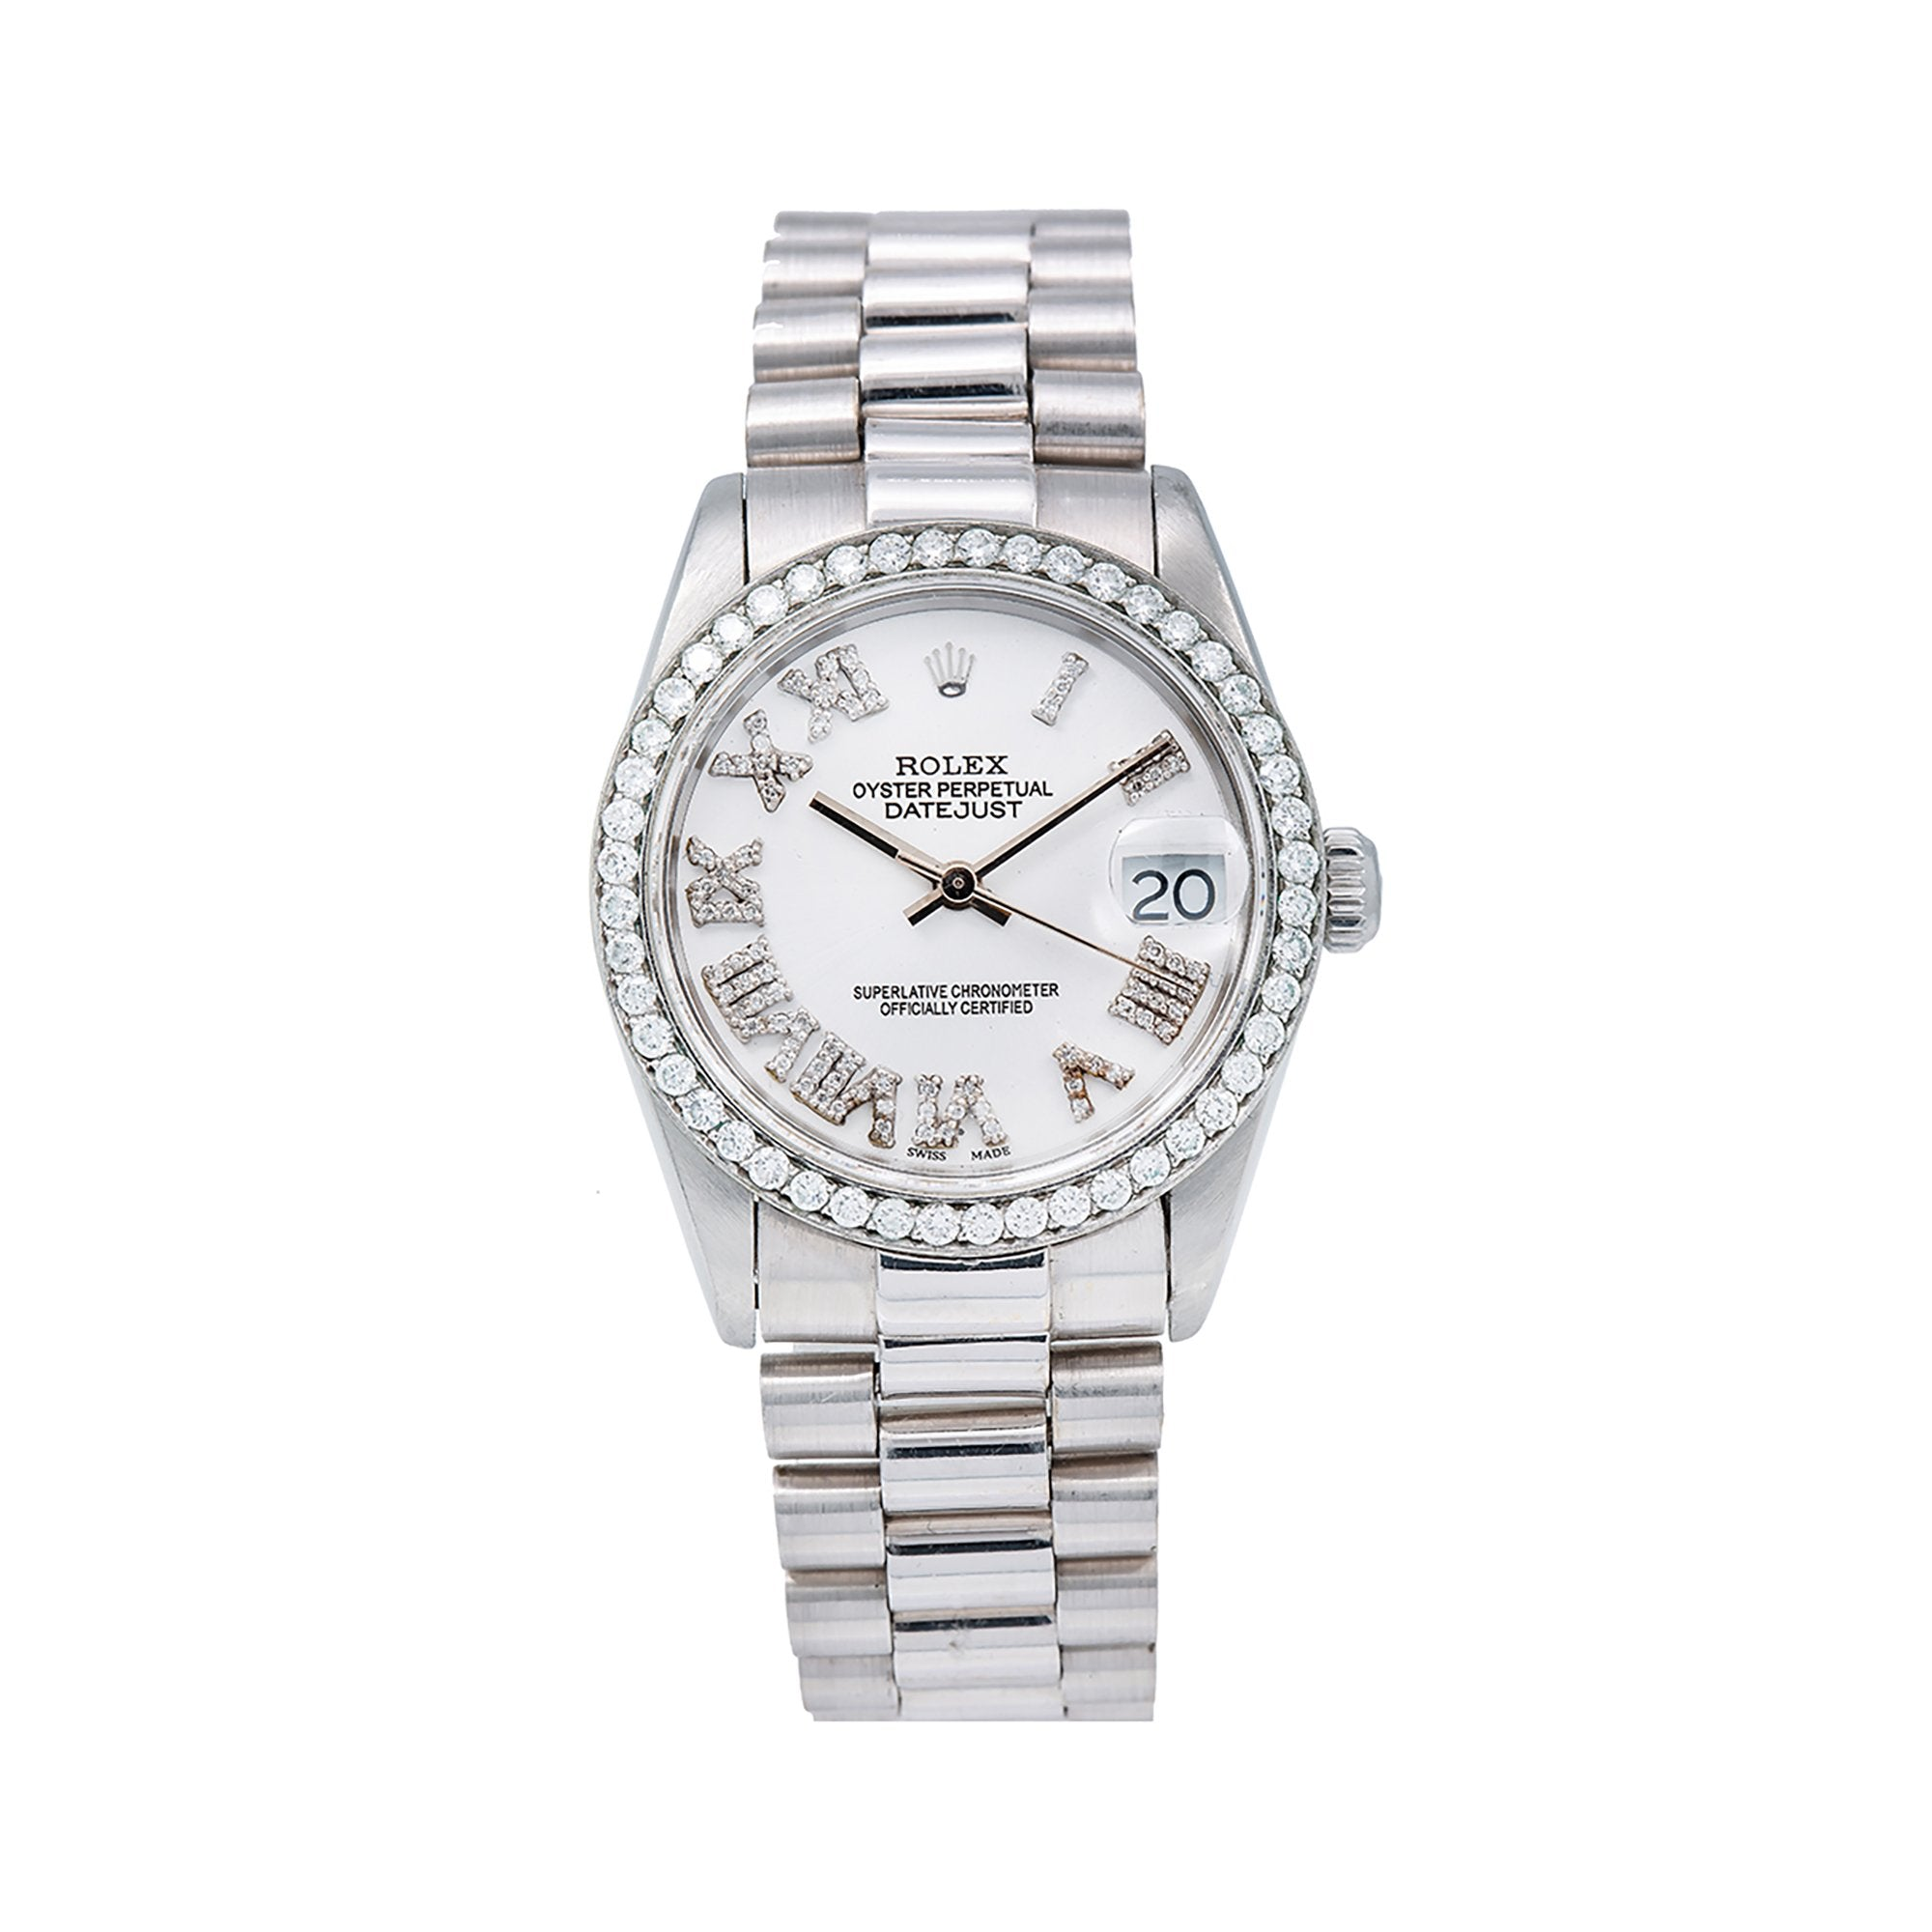 Rolex Datejust Diamond Watch, 31mm, Silver DiamondRoman Numeral Dial, White Gold Bracelet With 1.05 CT Diamonds